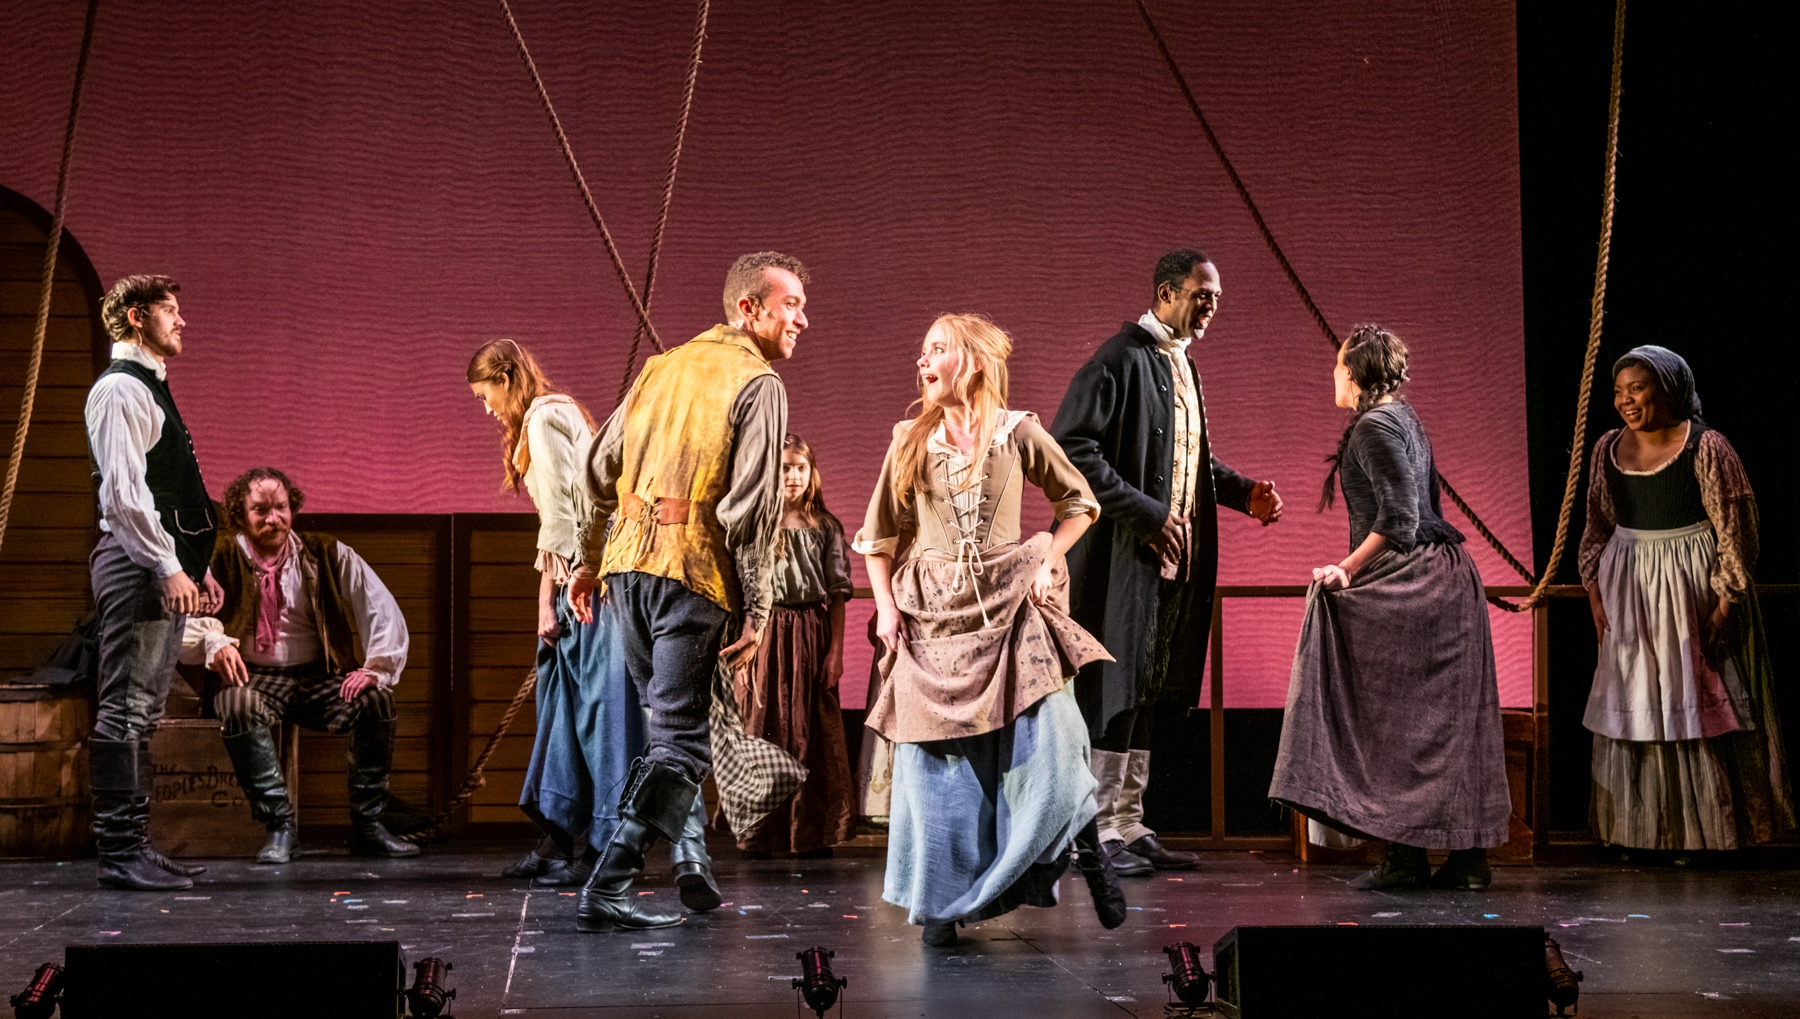 Ensemble Cast of LadyShip photo by Russ Rowland